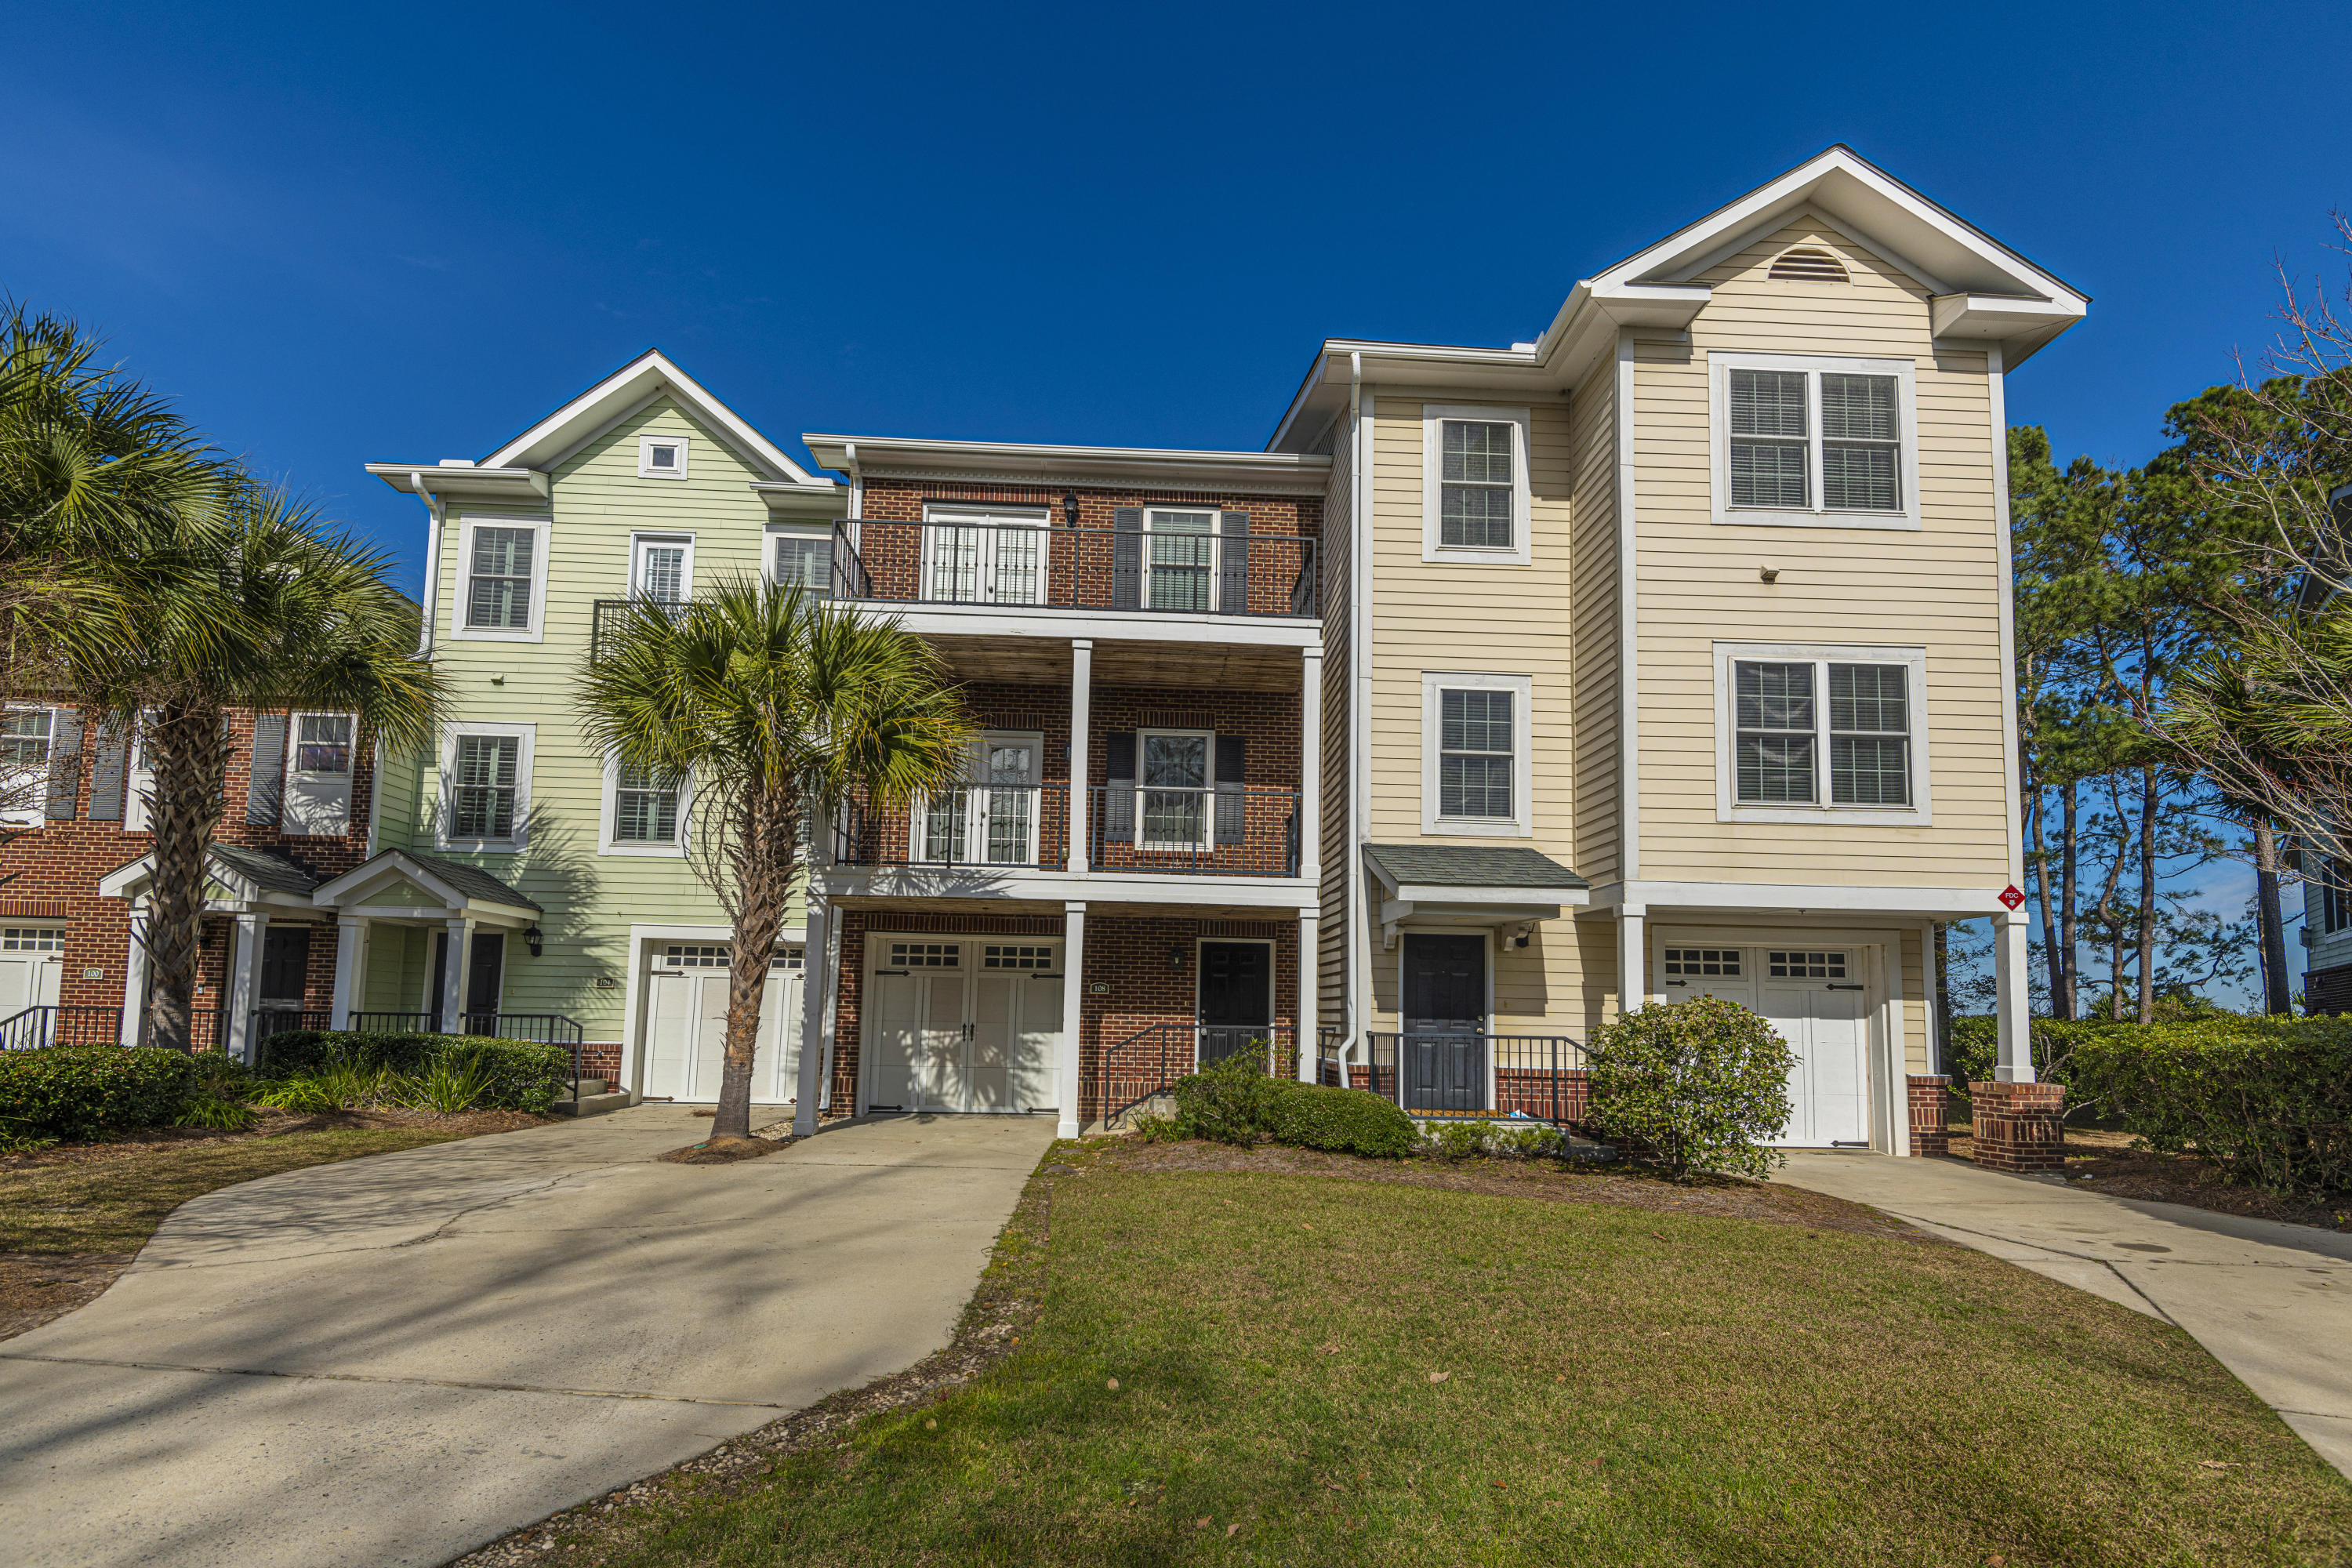 Etiwan Pointe Homes For Sale - 108 Winding Creek, Mount Pleasant, SC - 20